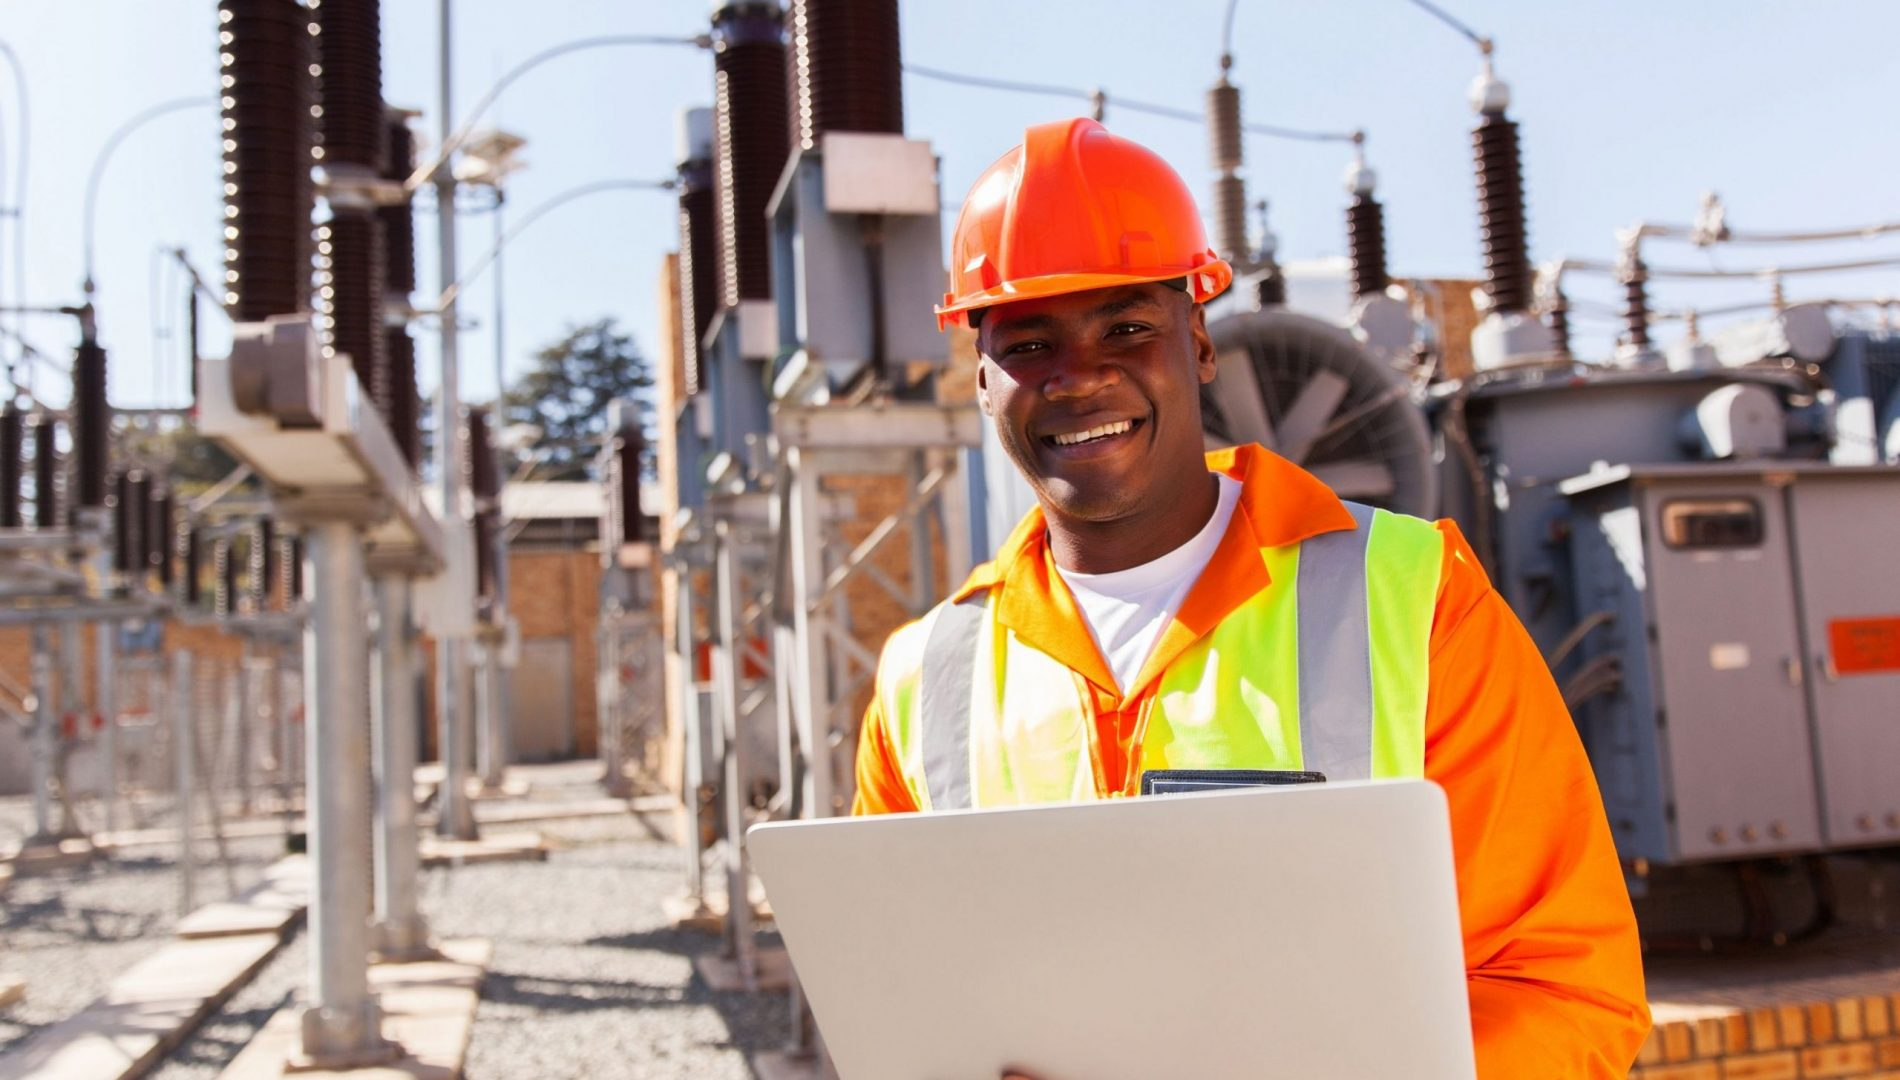 Looking for Advanced Power and Energy Solution for Your Company?